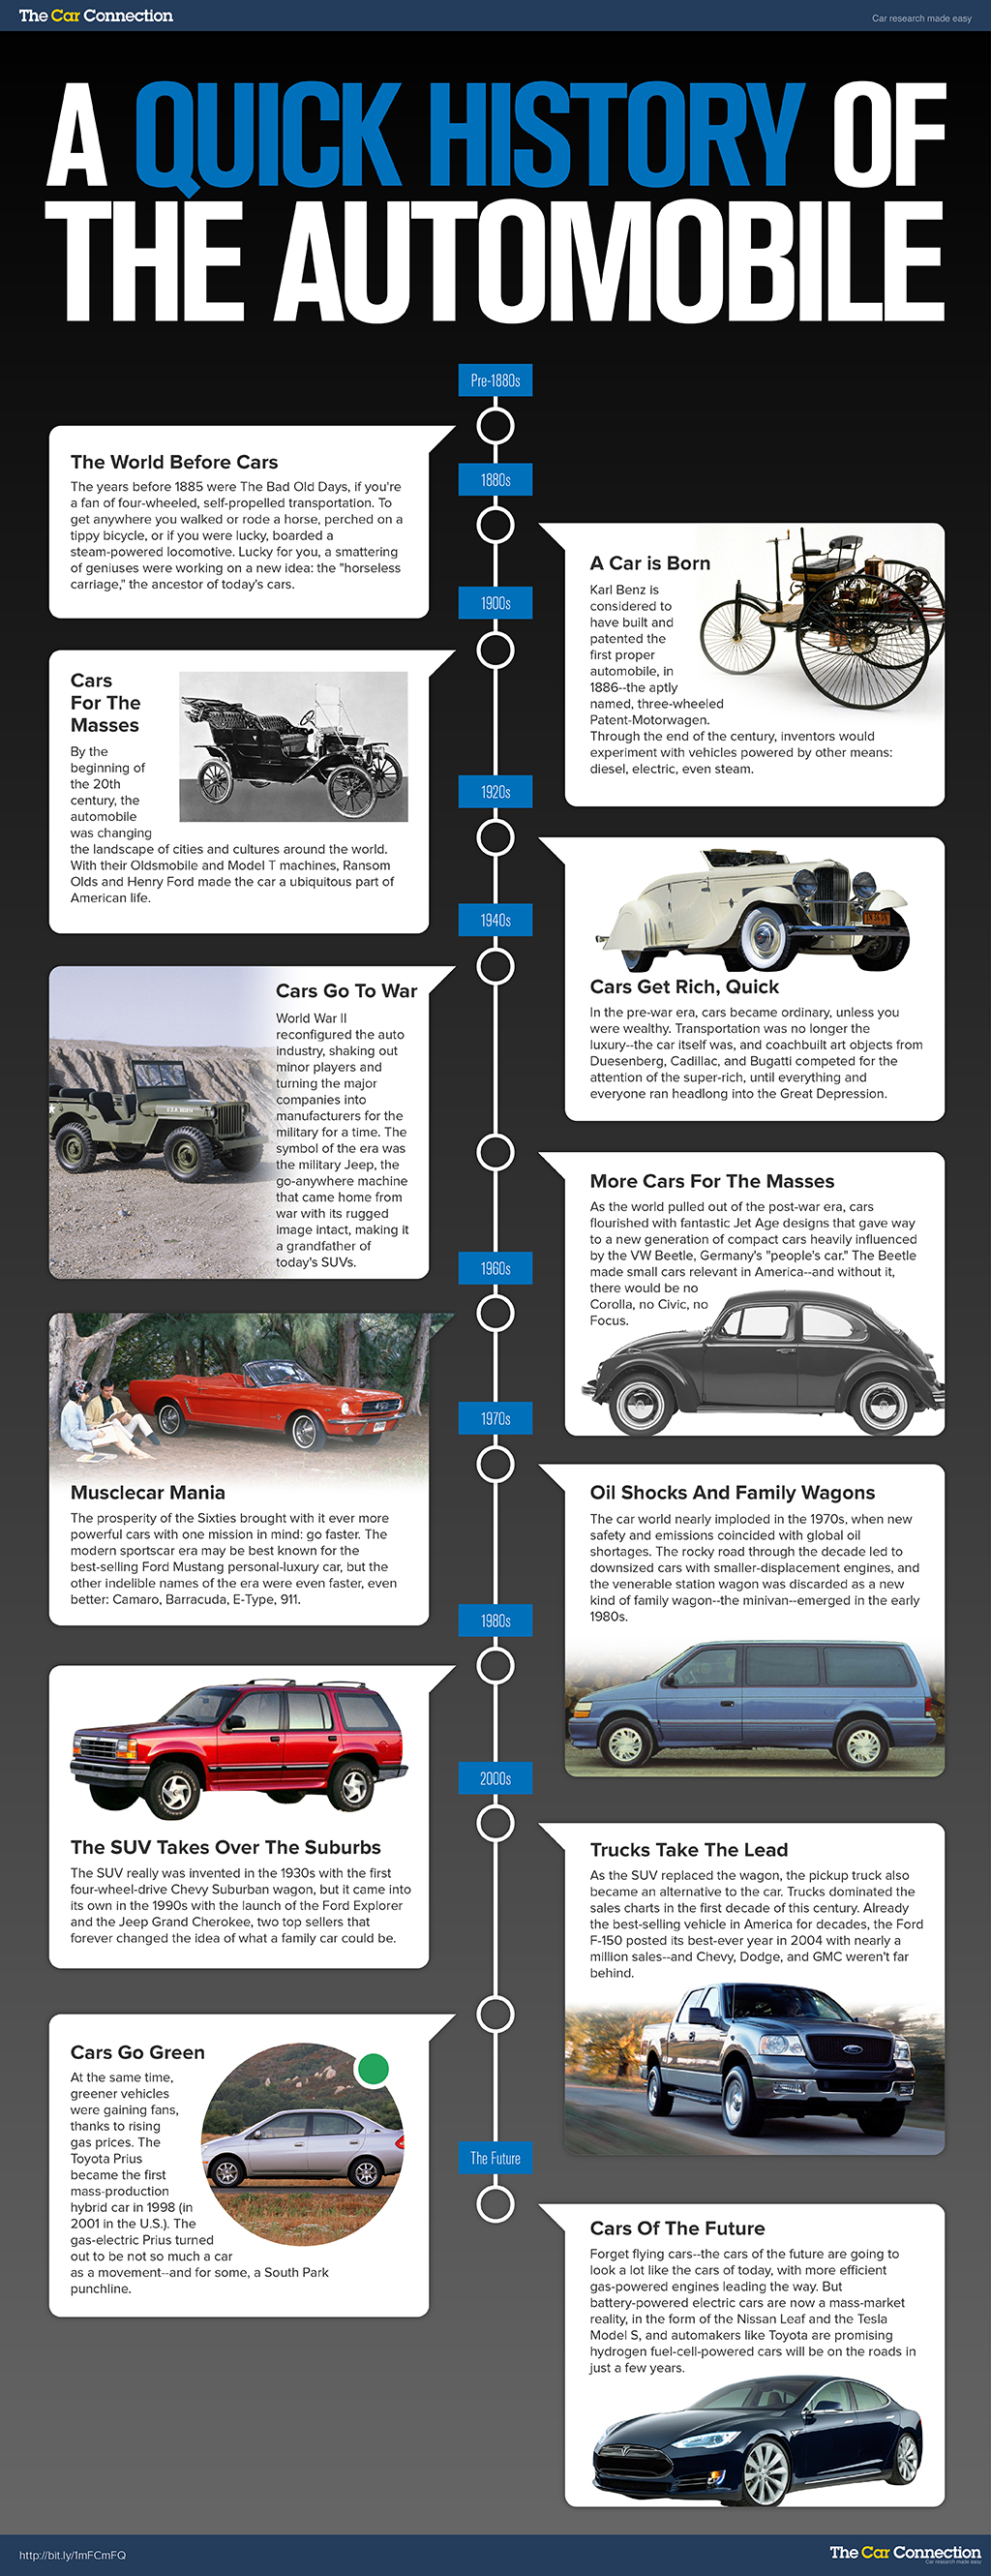 Land Rover Fort Worth >> A Quick History Of The Automobile